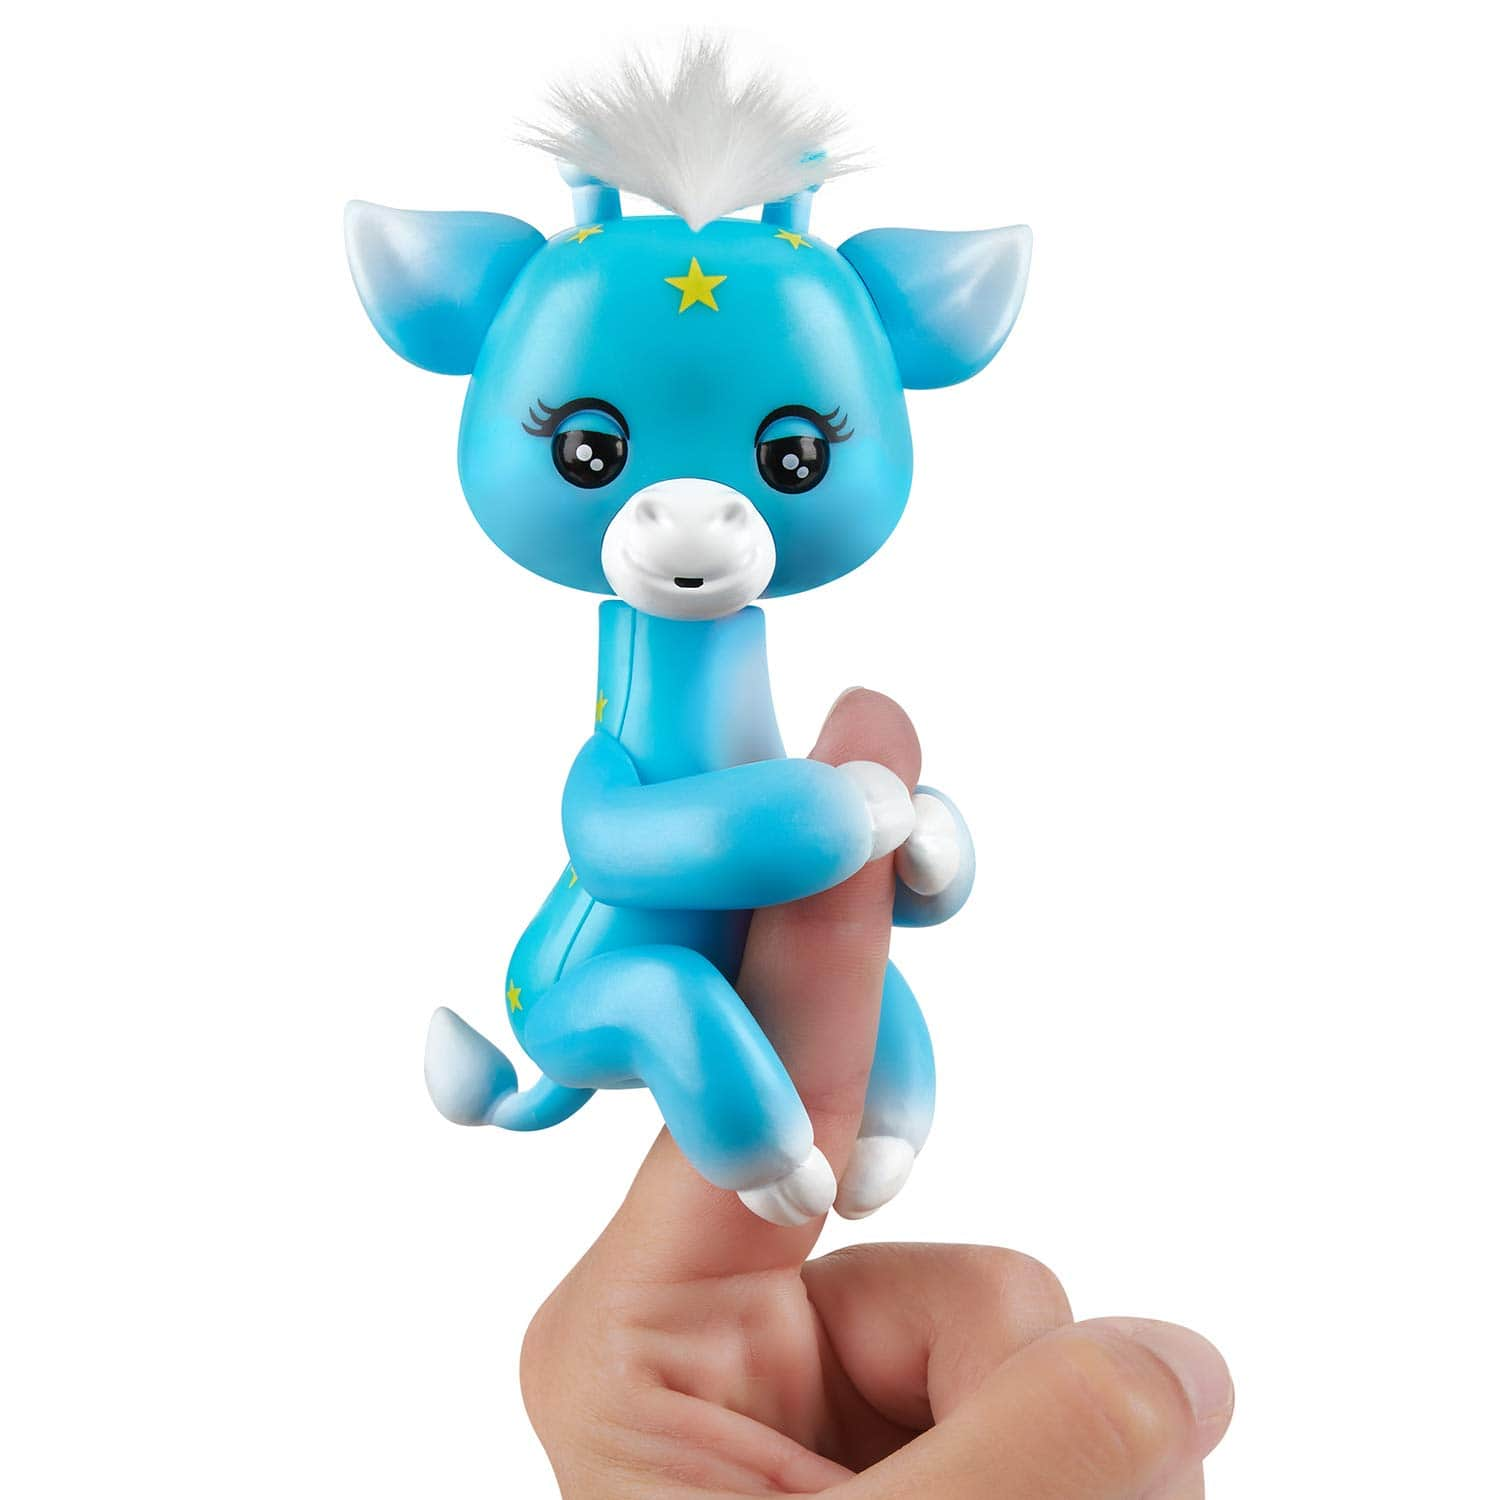 WowWee Fingerlings Baby Giraffe - Lil' G (Blue) - Friendly Interactive Toy $4